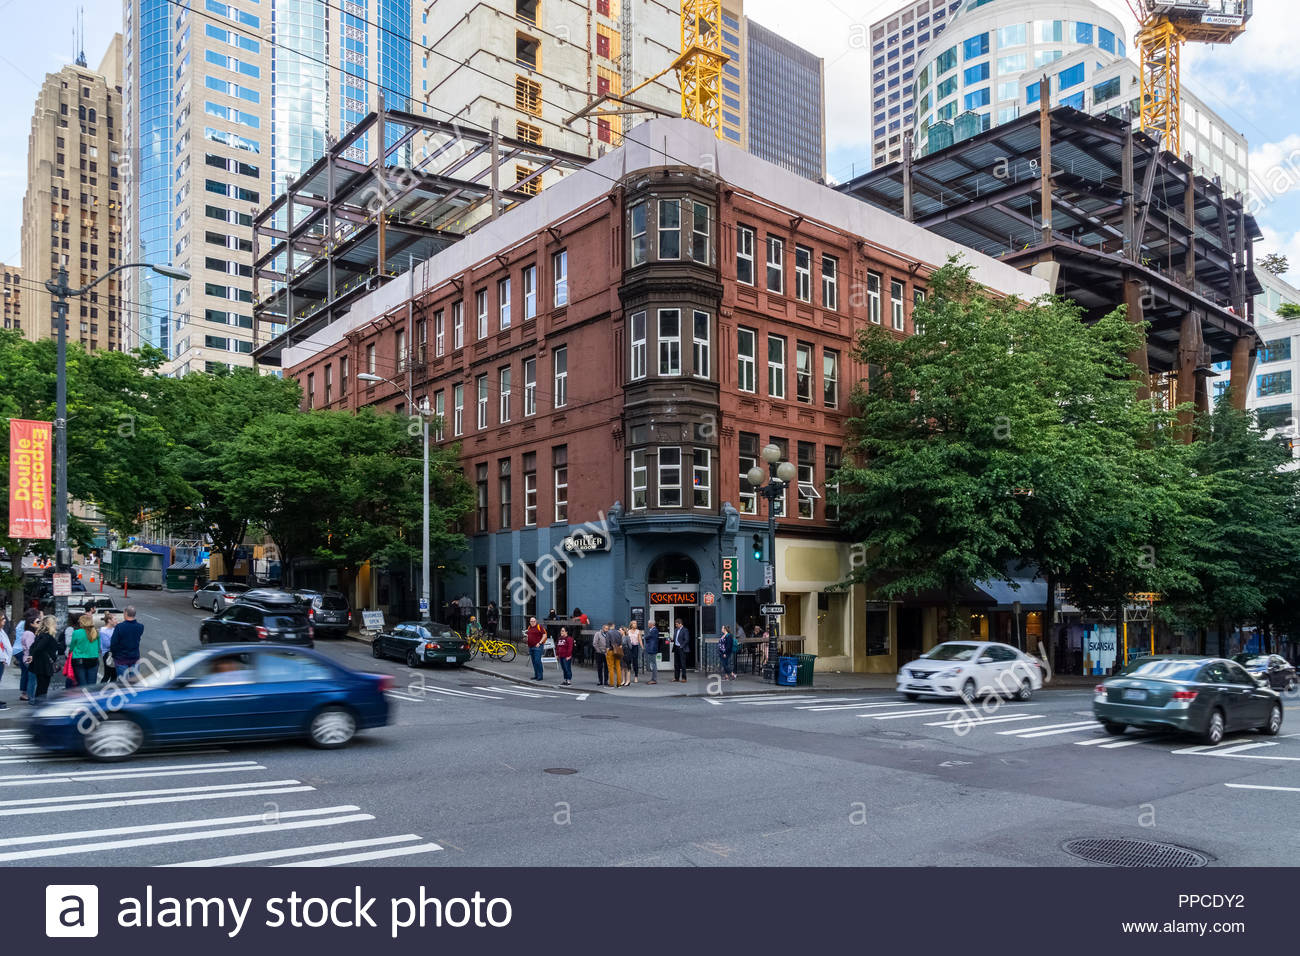 historic-brick-building-of-the-former-diller-hotel-located-on-1st-avenue-in-downtown-seattle-with-construction-site-of-the-skanska-2u-skyscraper-usa-PPCD